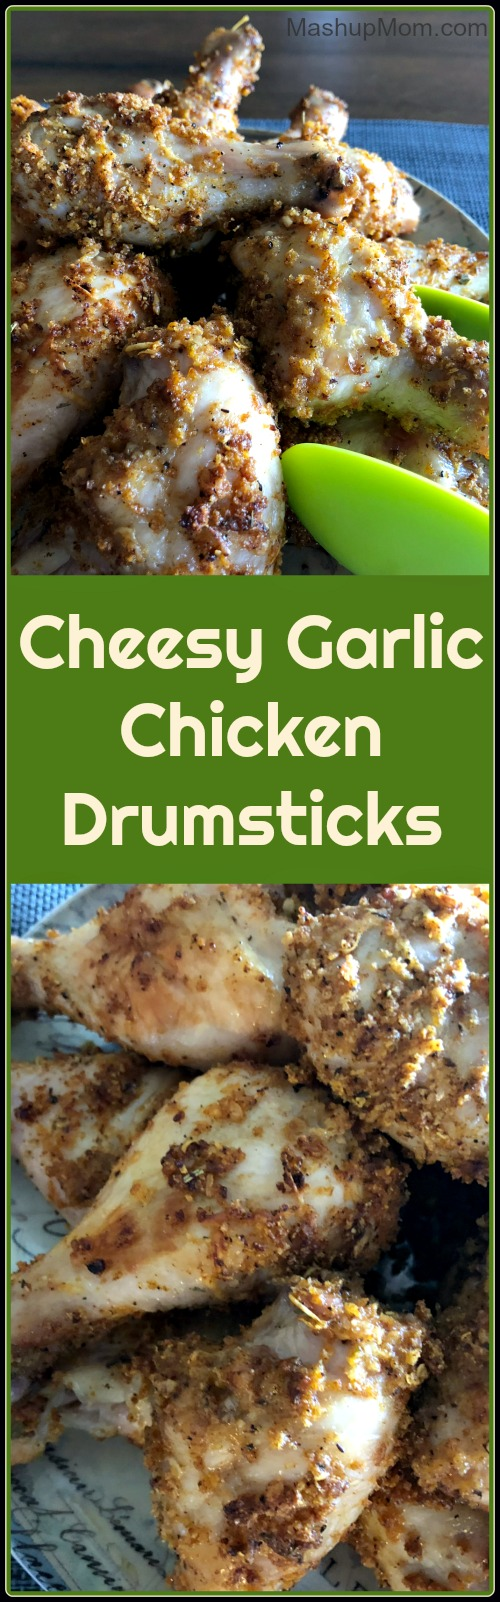 Tonight, why not shake up your normal chicken drumsticks recipe routine with these {title}? If you like garlic, youll probably like this affordable and kid-friendly recipe for easy, cheesy, garlicky good chicken drumsticks!